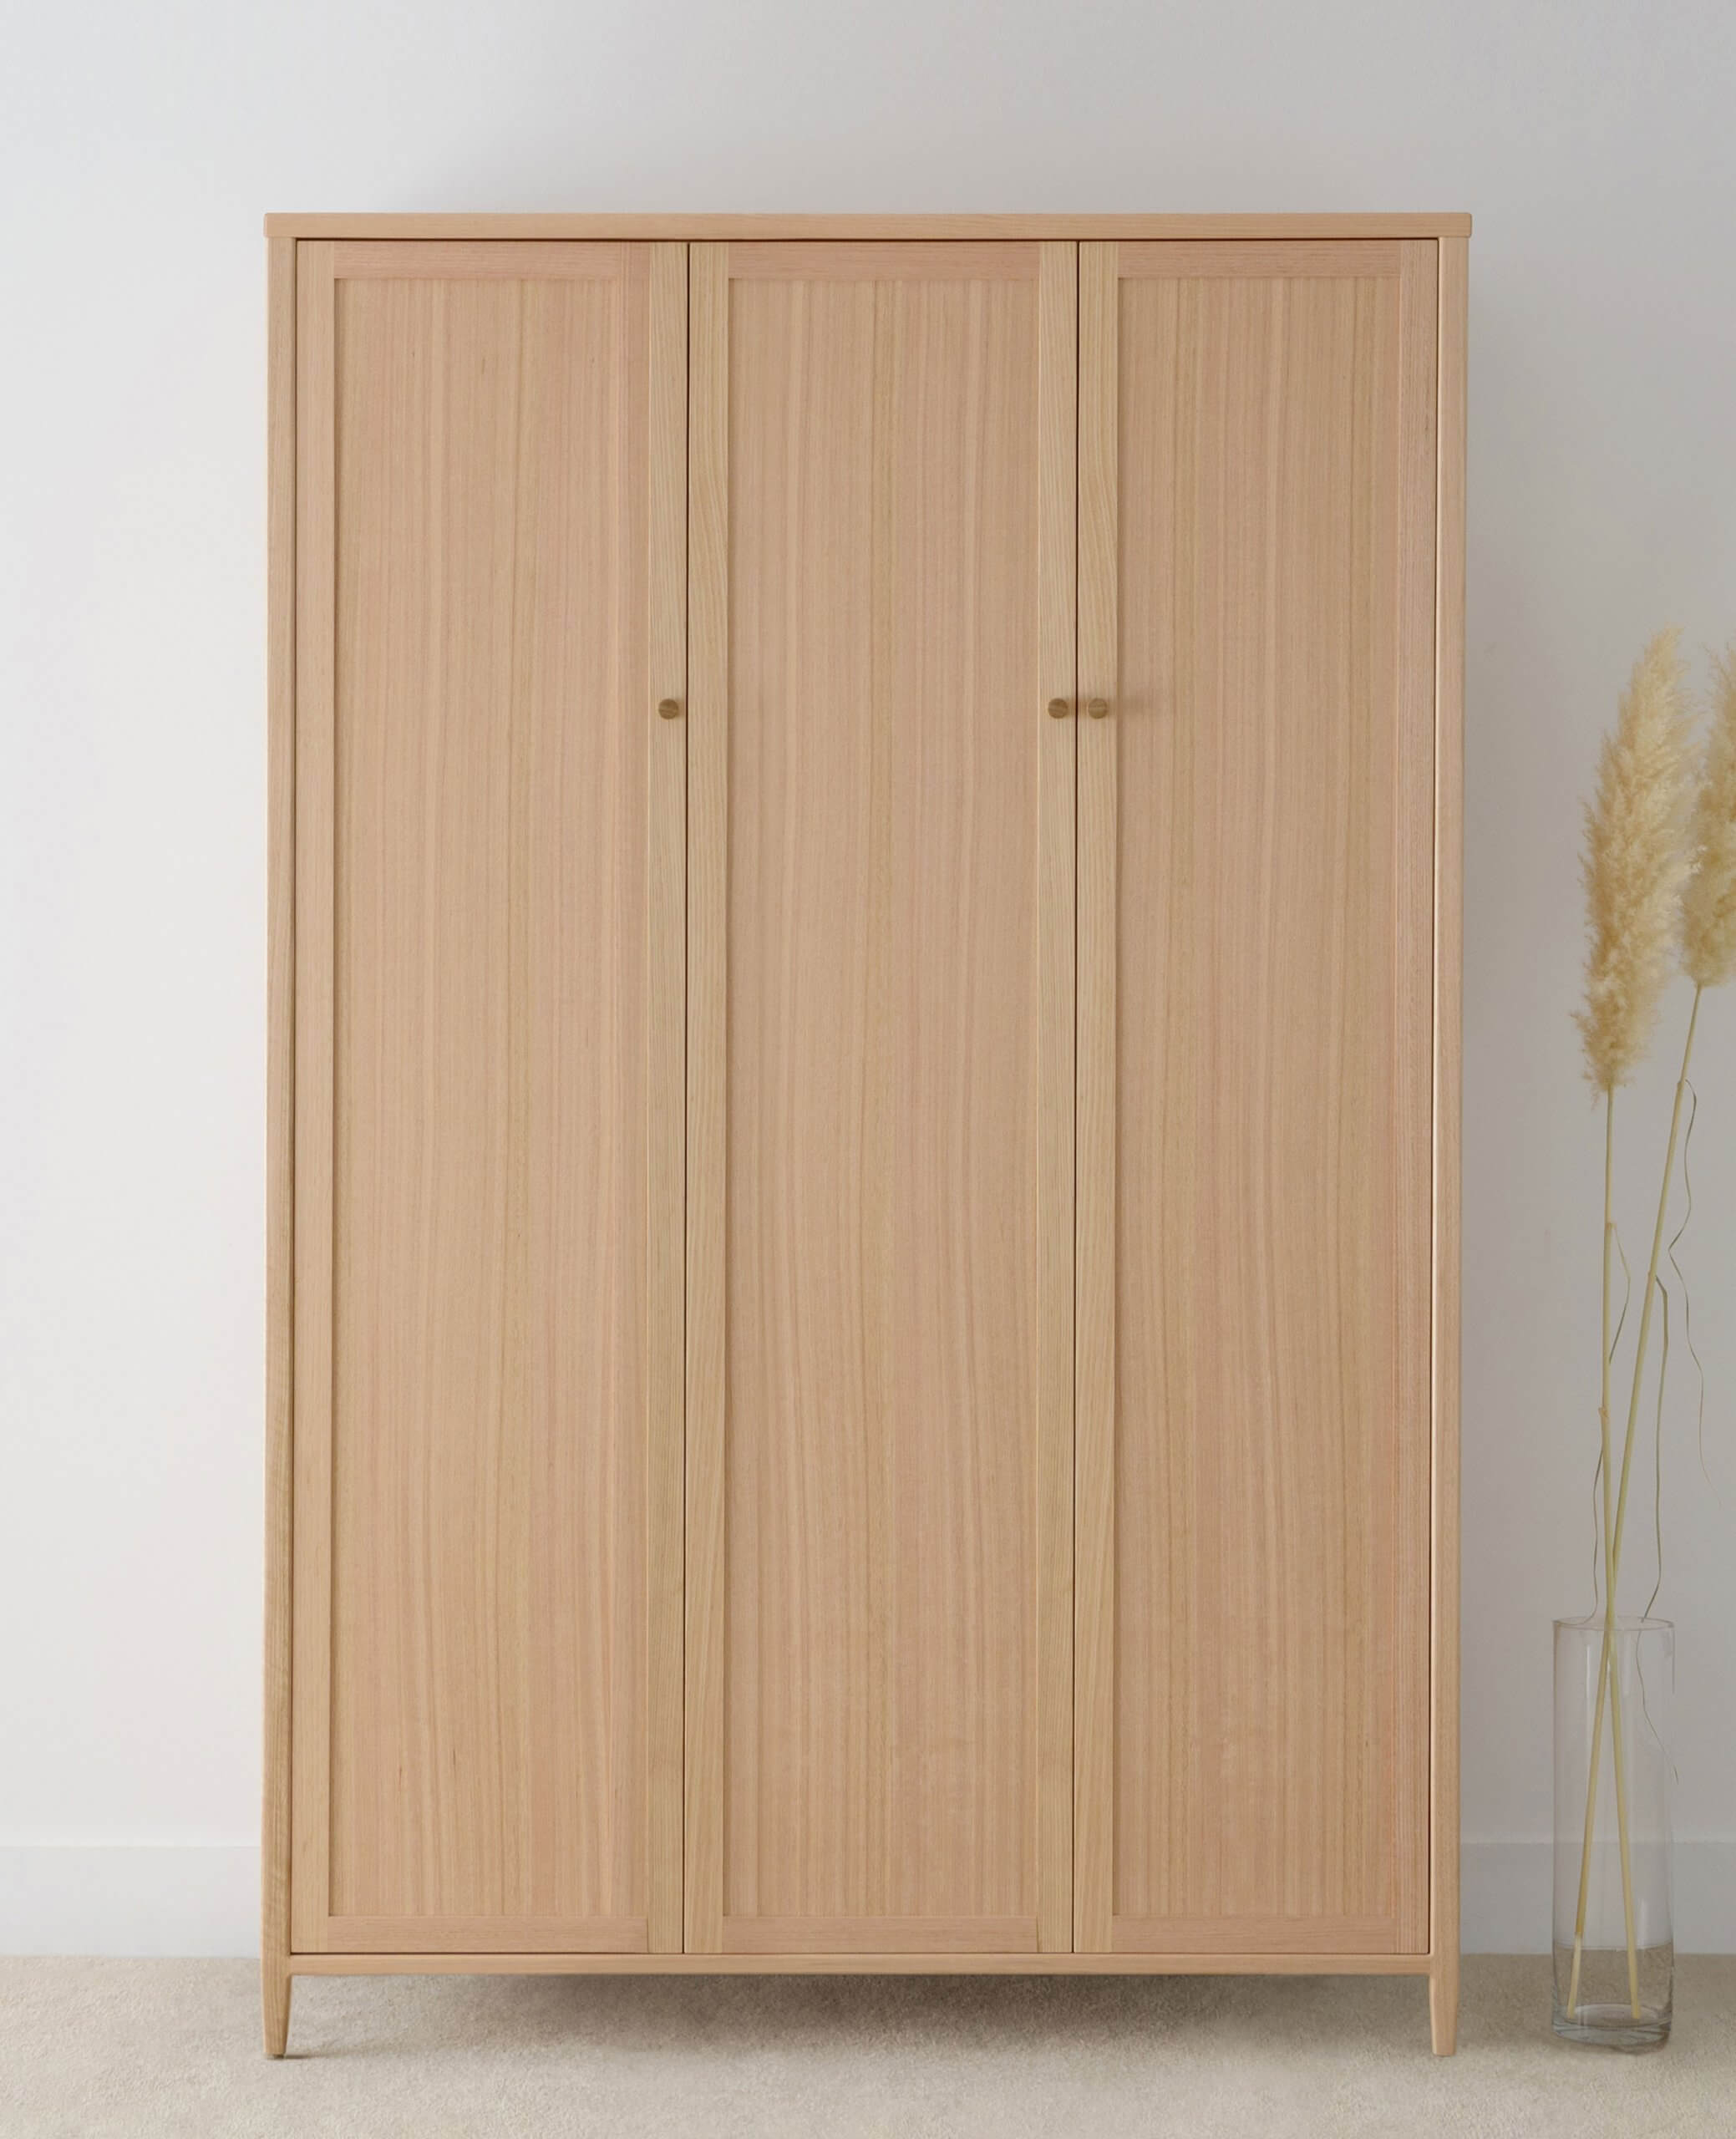 large free standing wardrobe design with 3 doors and internal shelves